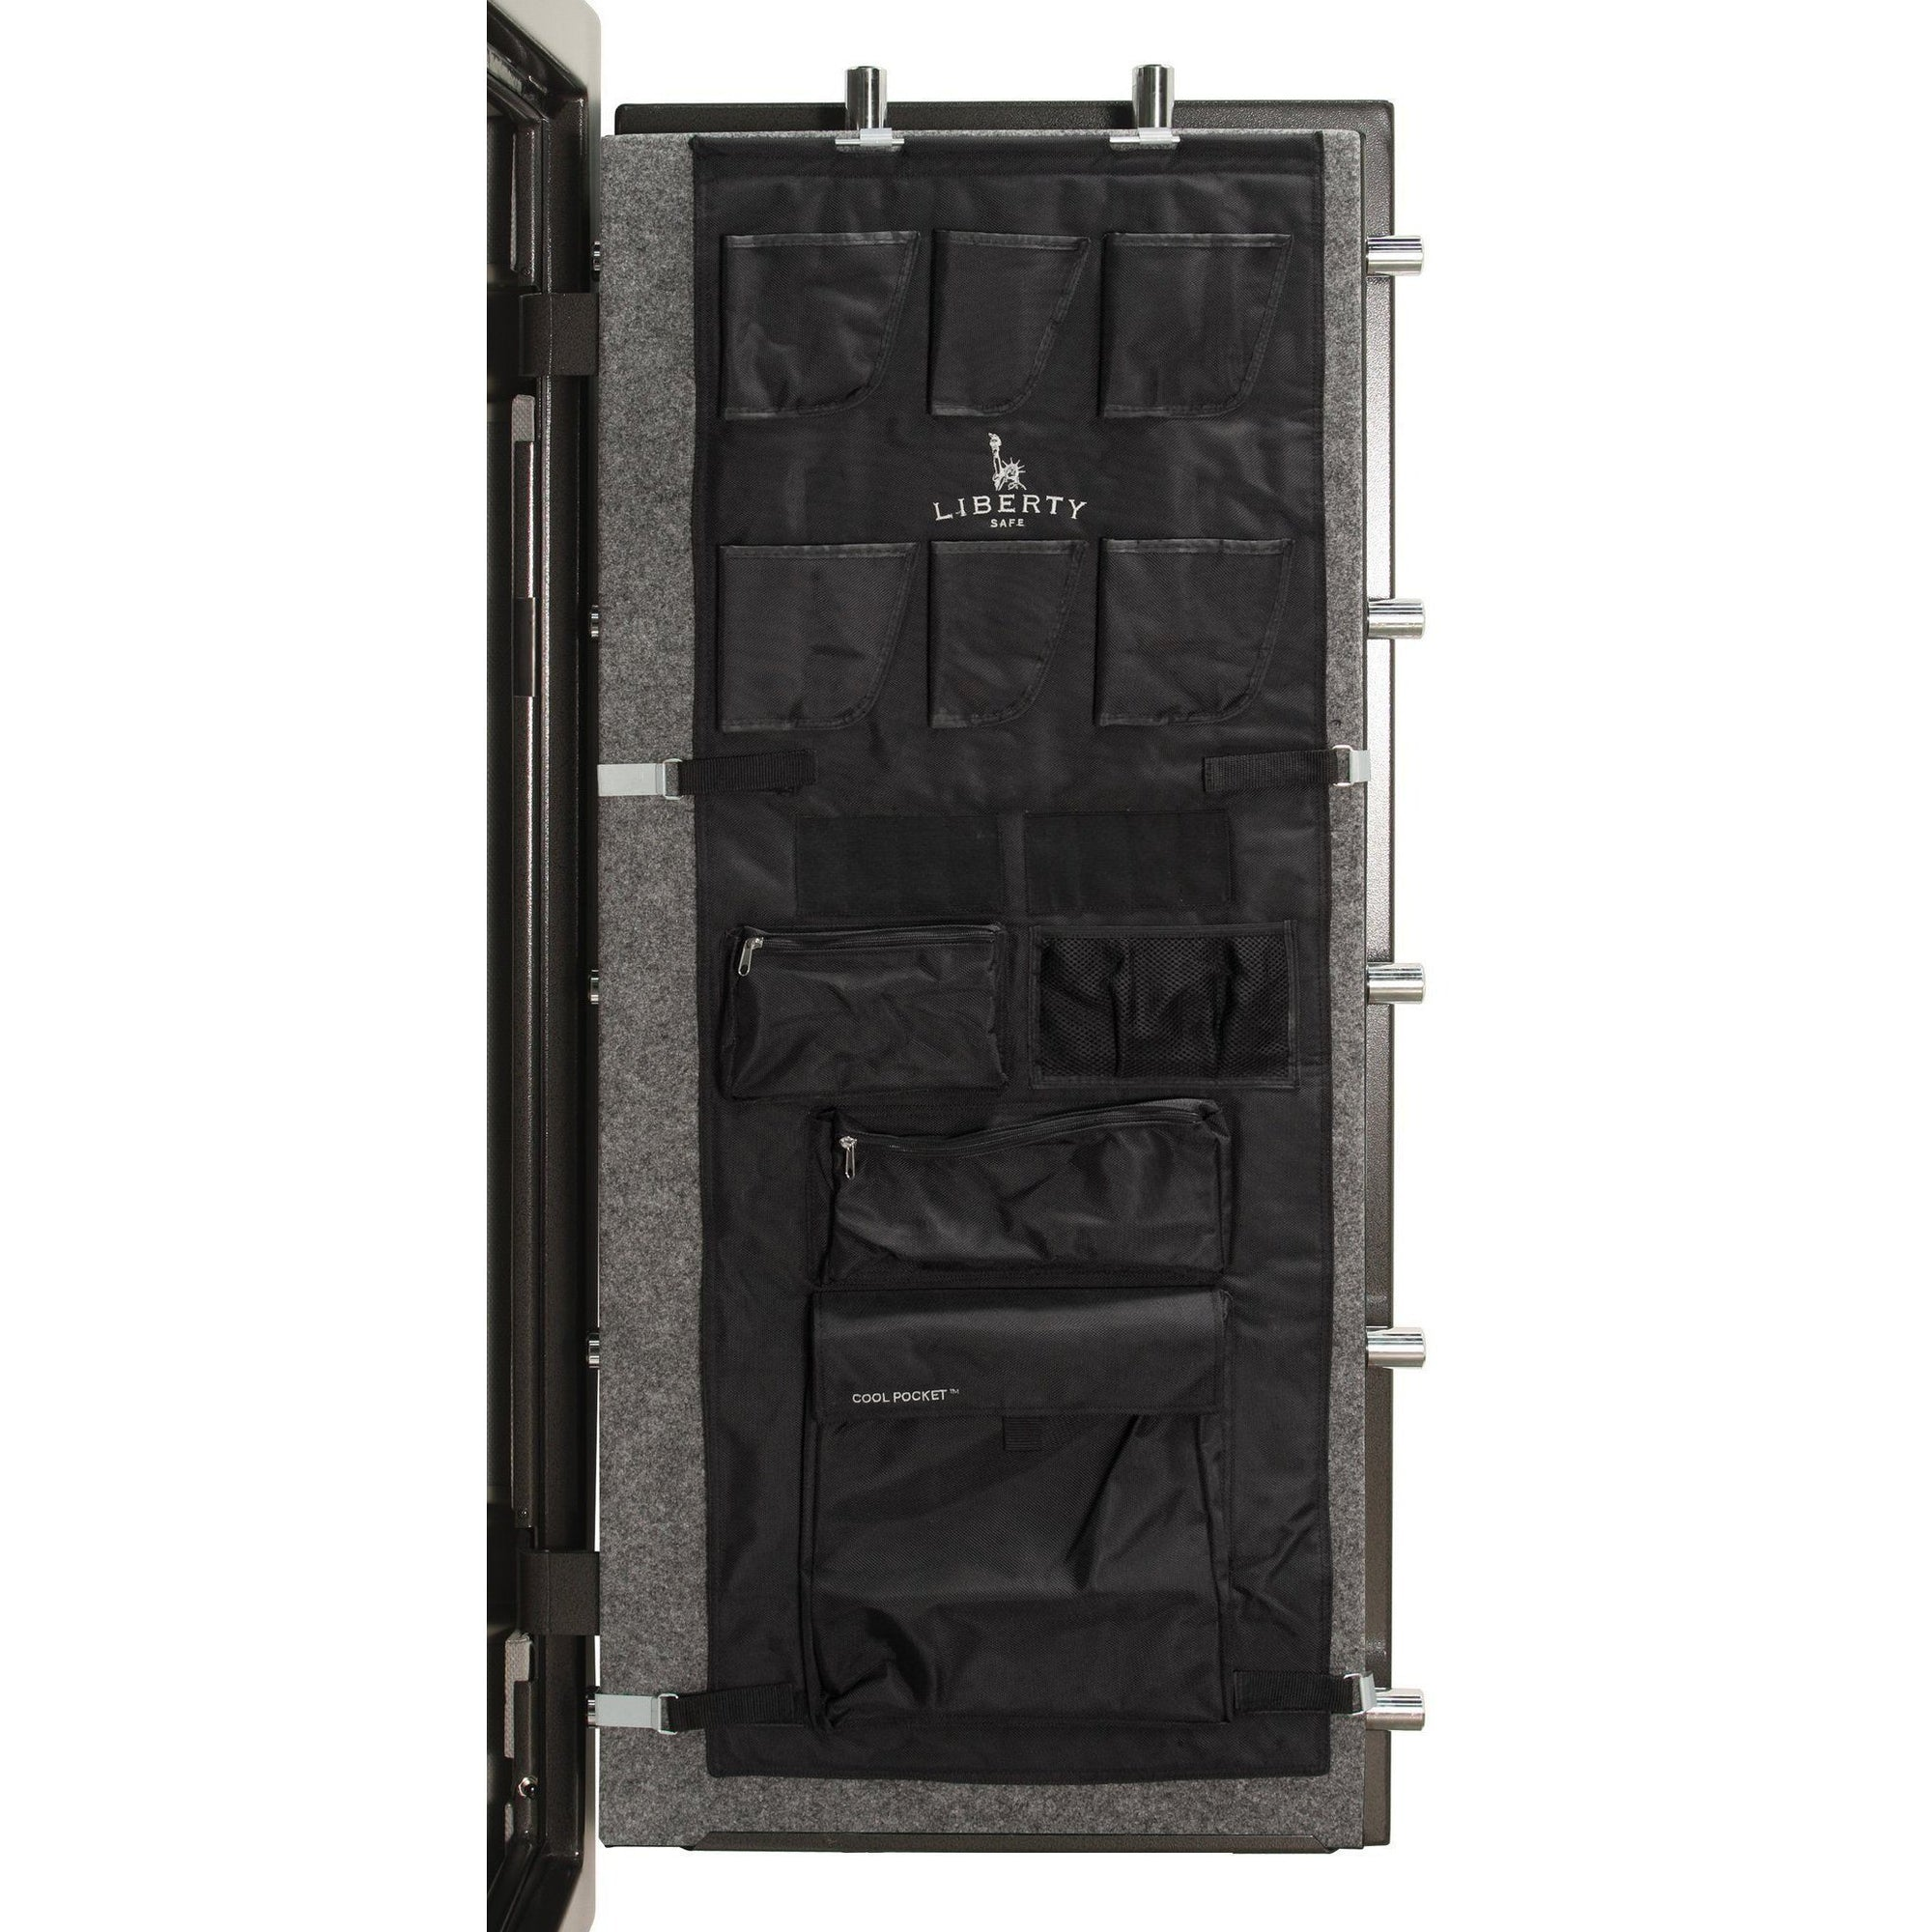 Accessory - Storage - Door Panel - 20-23-25 size safes